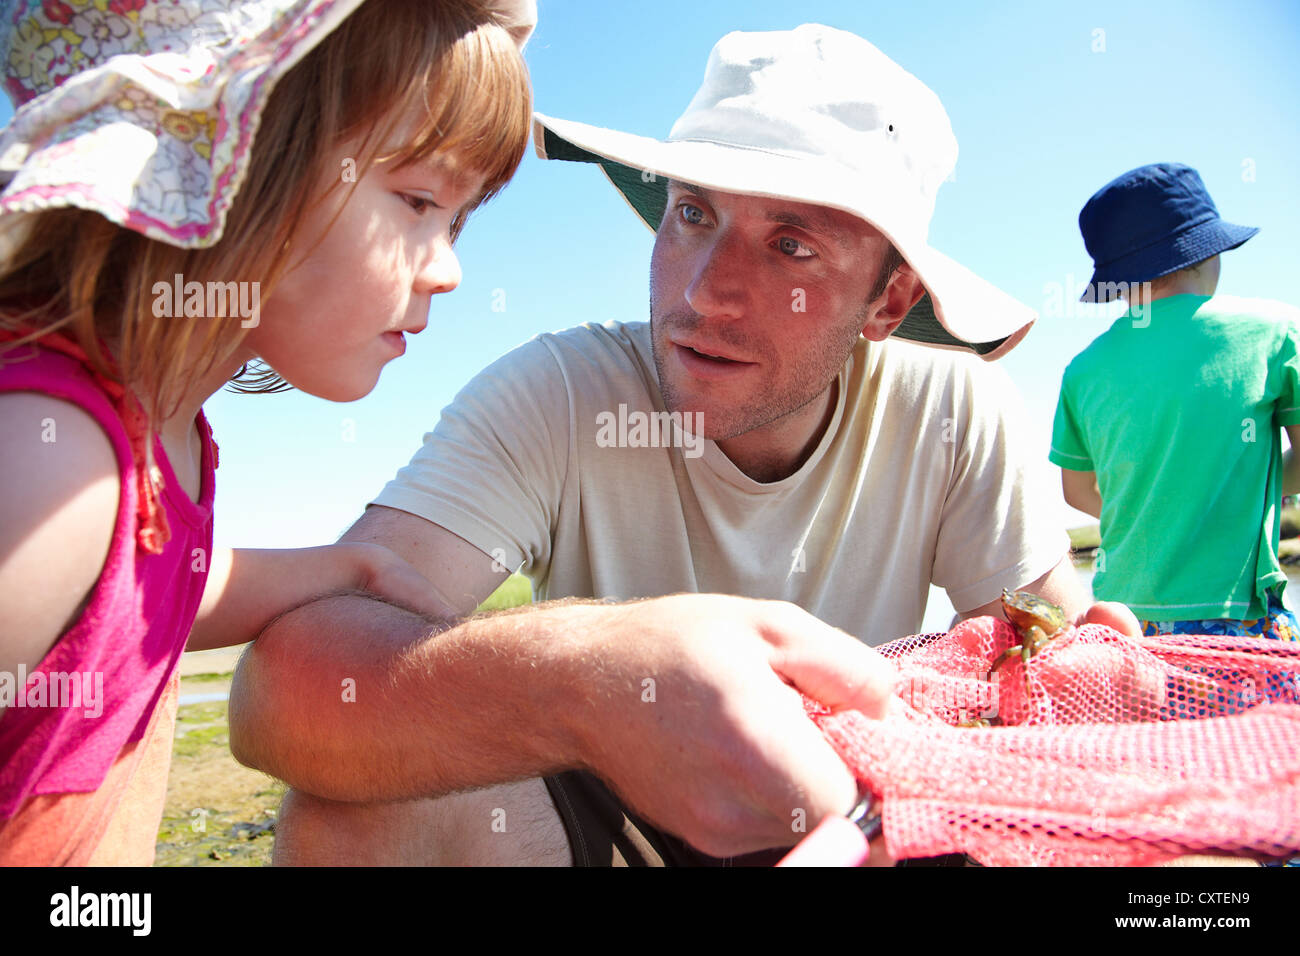 Father and daughter fishing with nets - Stock Image